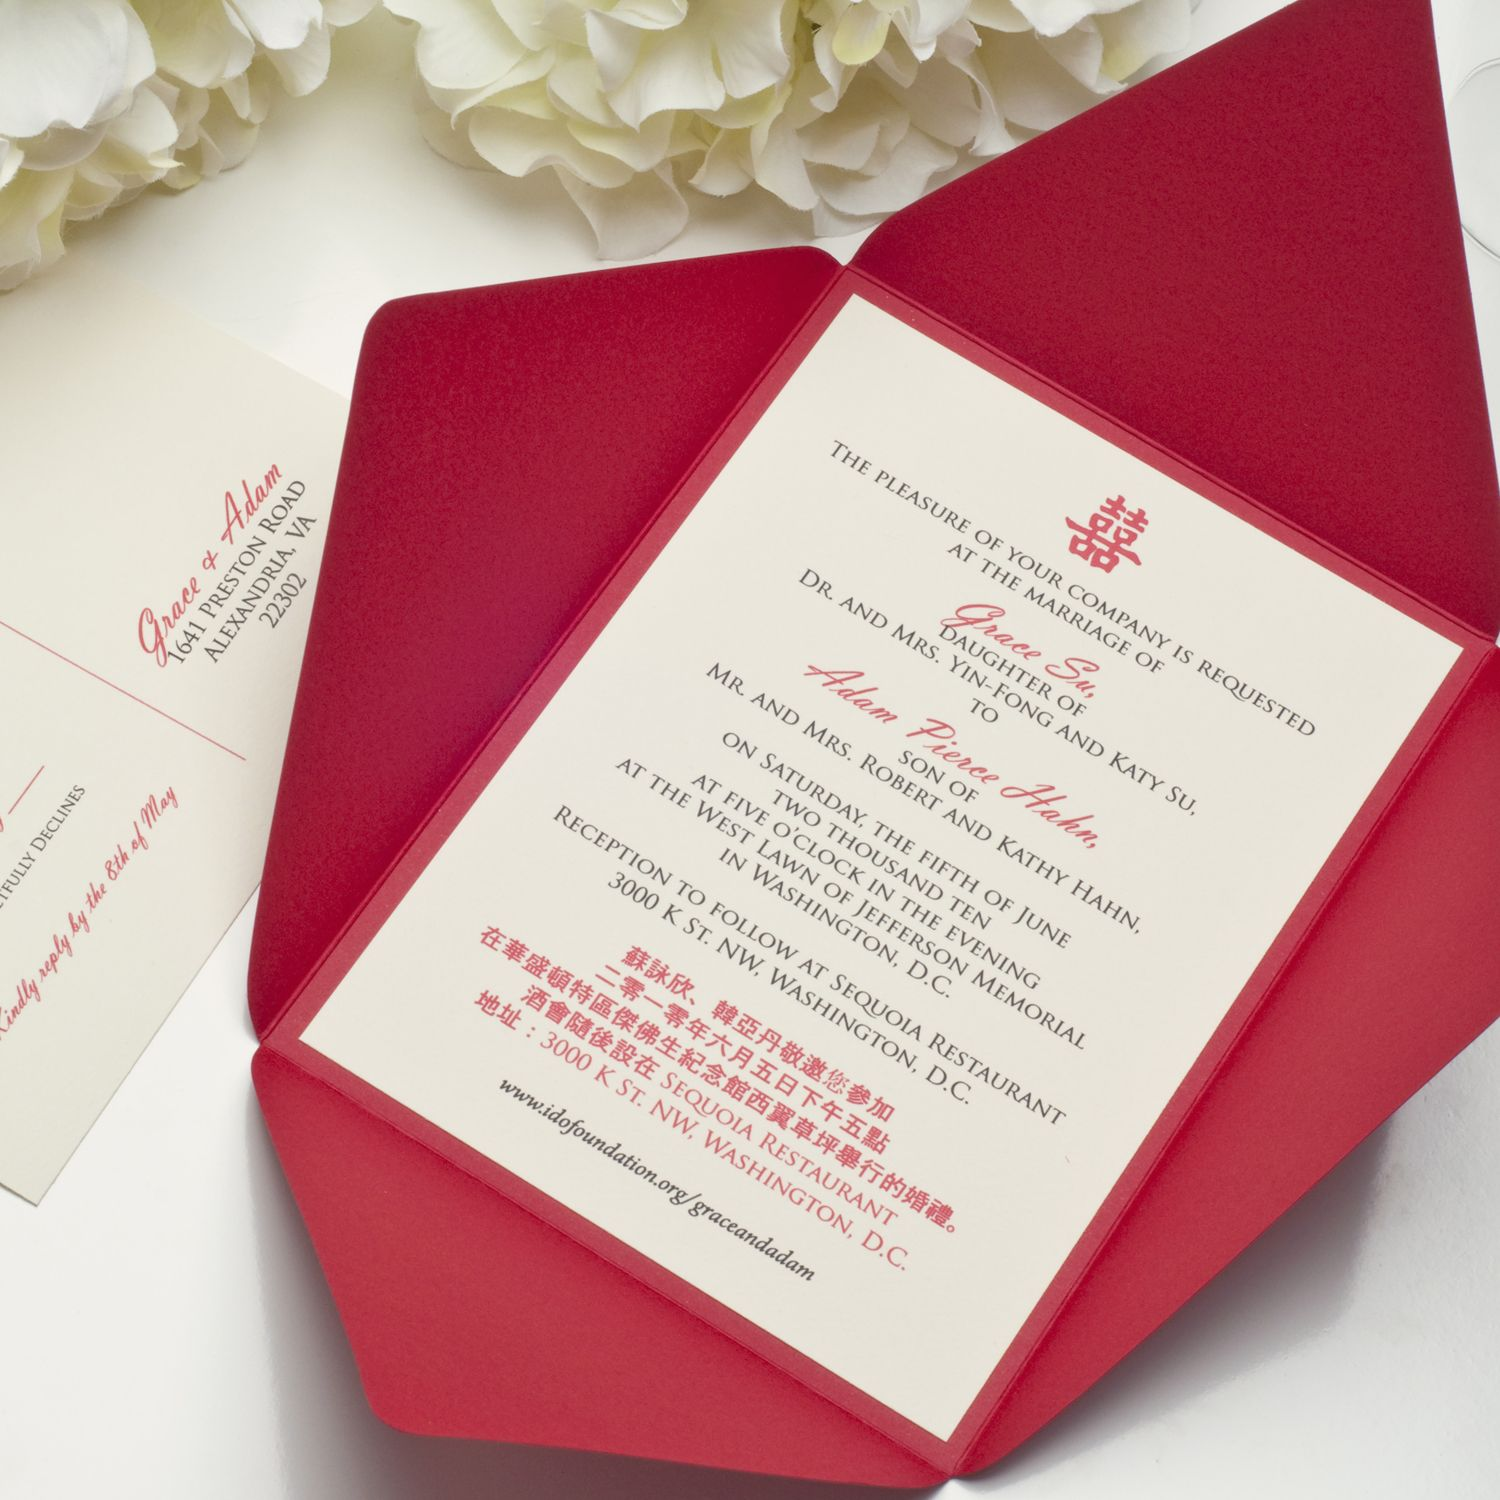 inauguration invitations - Google Search | Me encantan | Pinterest ...